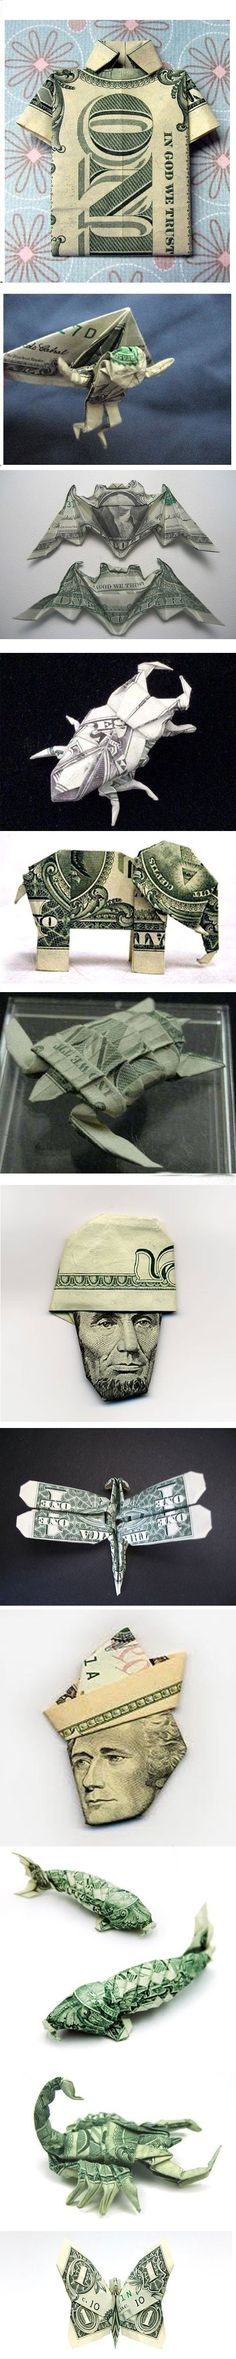 many ways to use a dollar